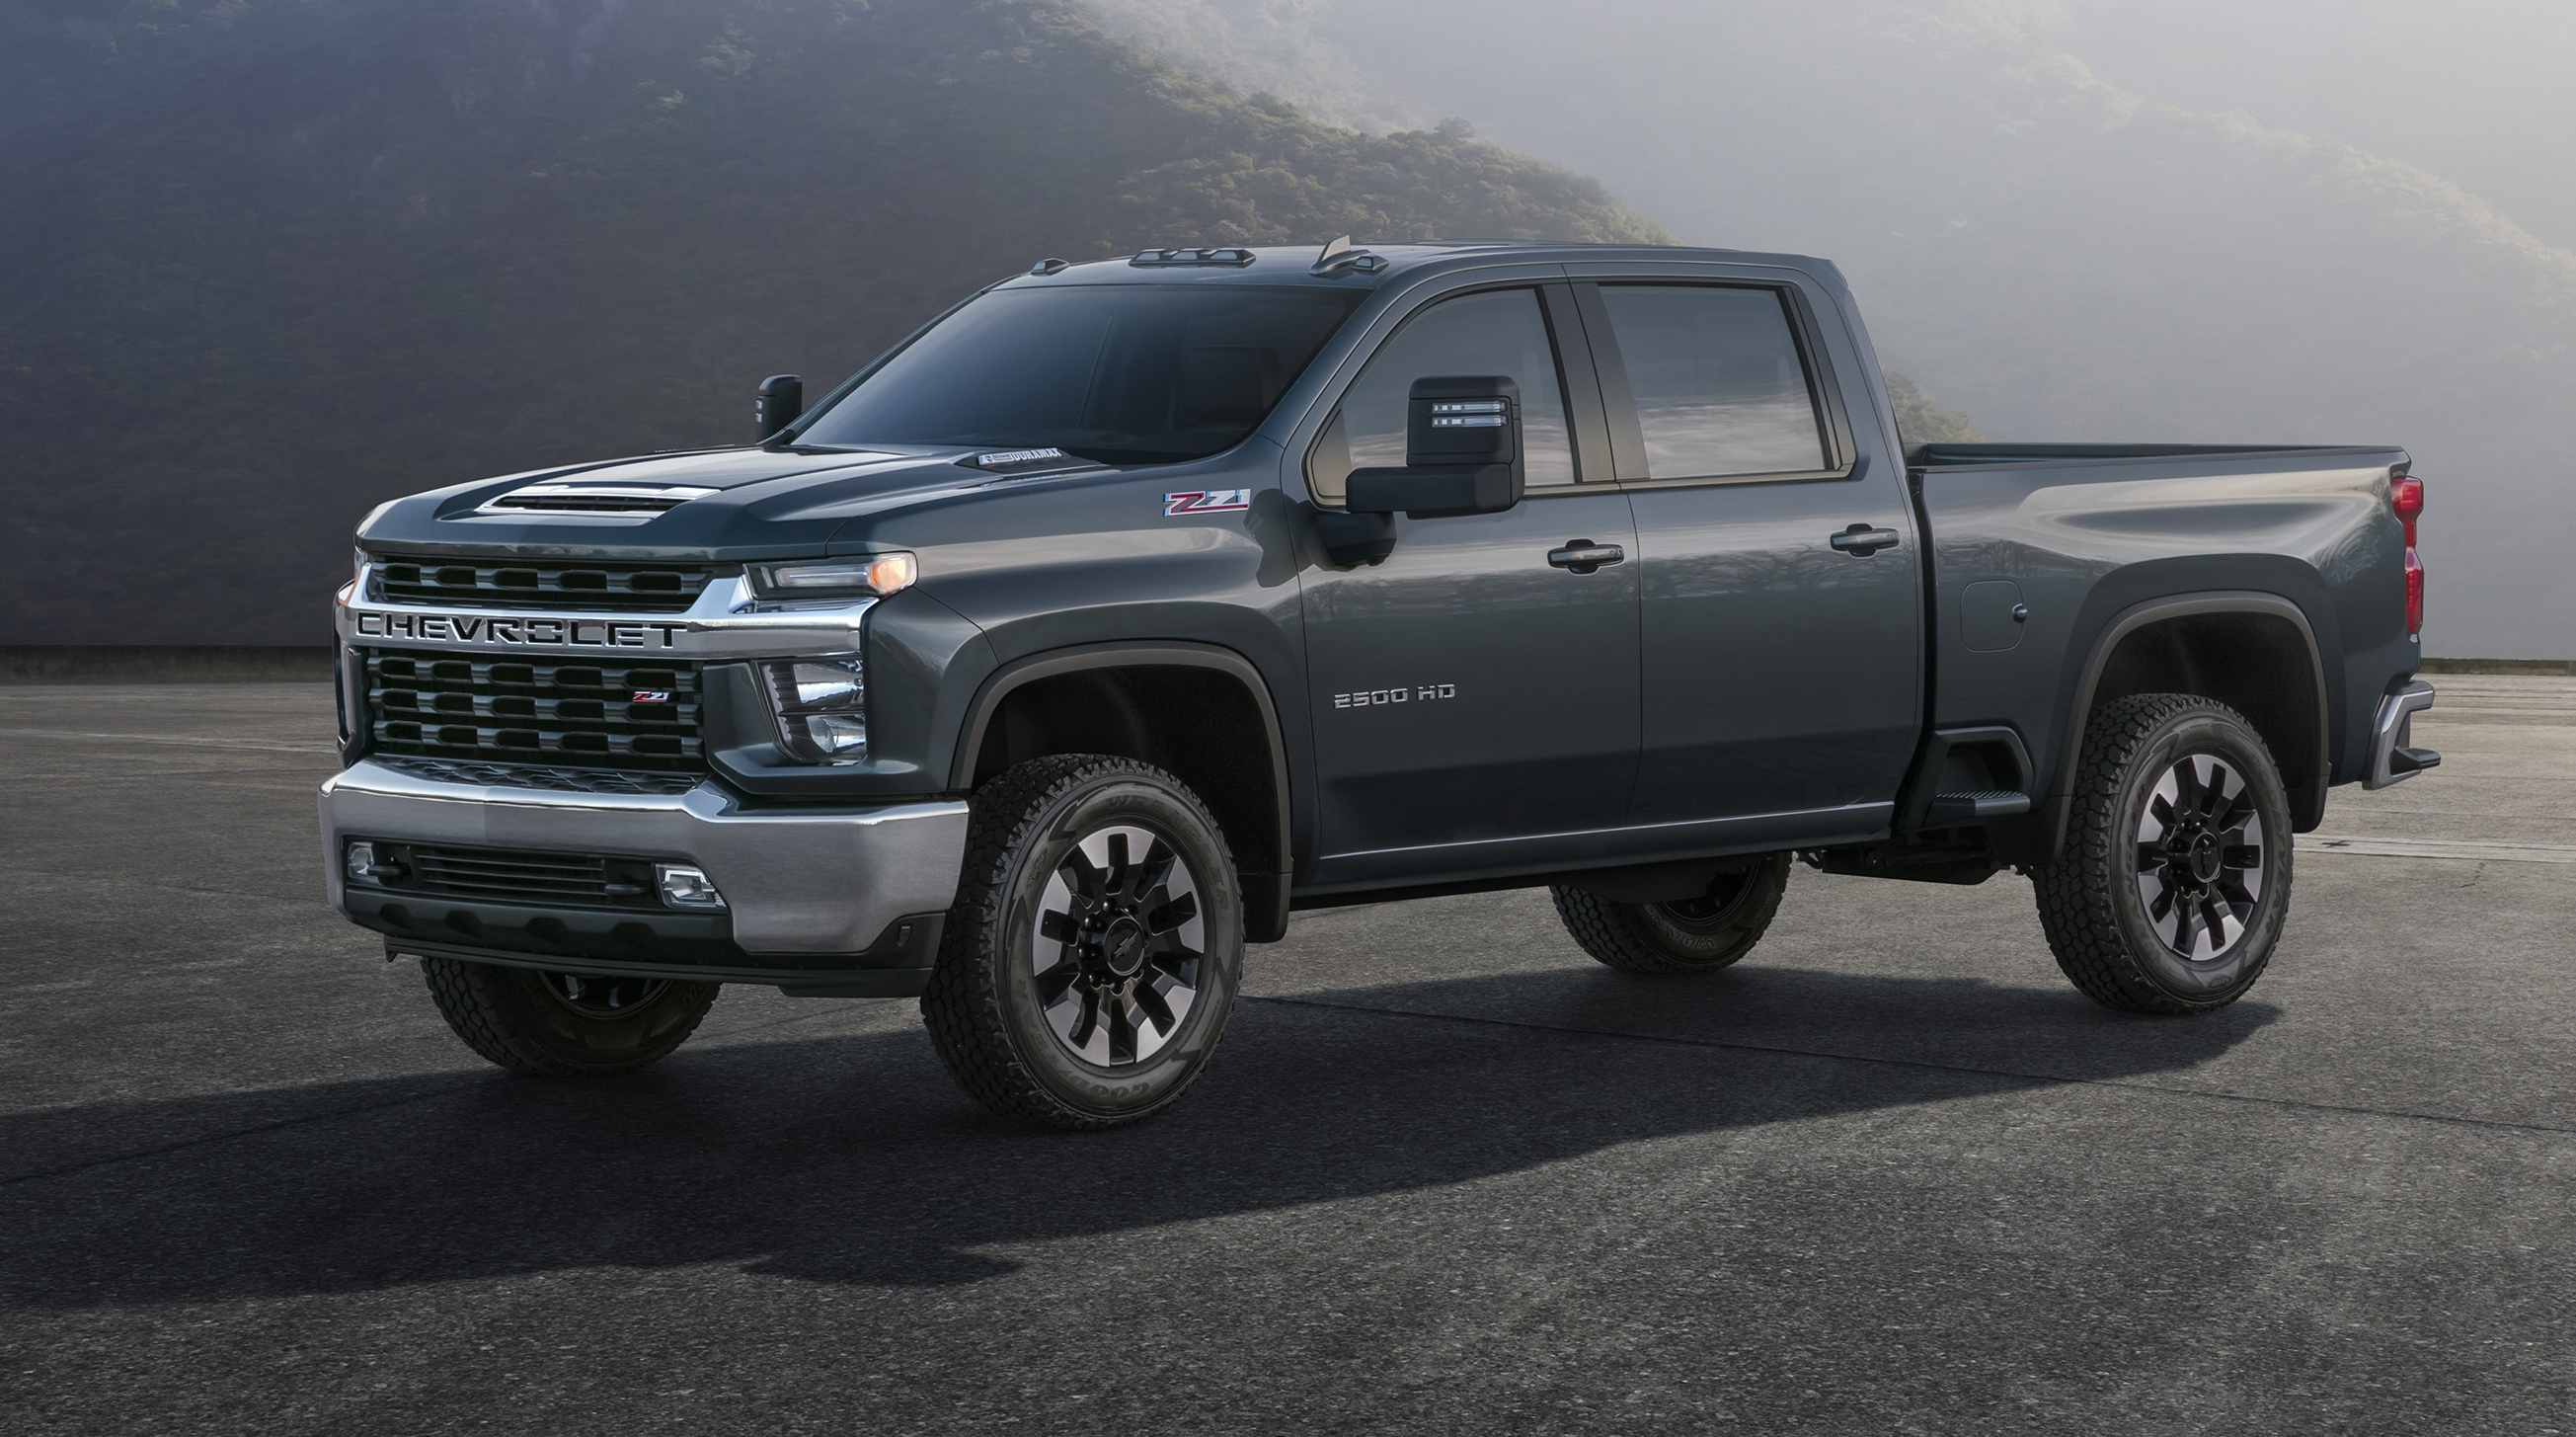 58 New 2020 Silverado Hd Concept and Review